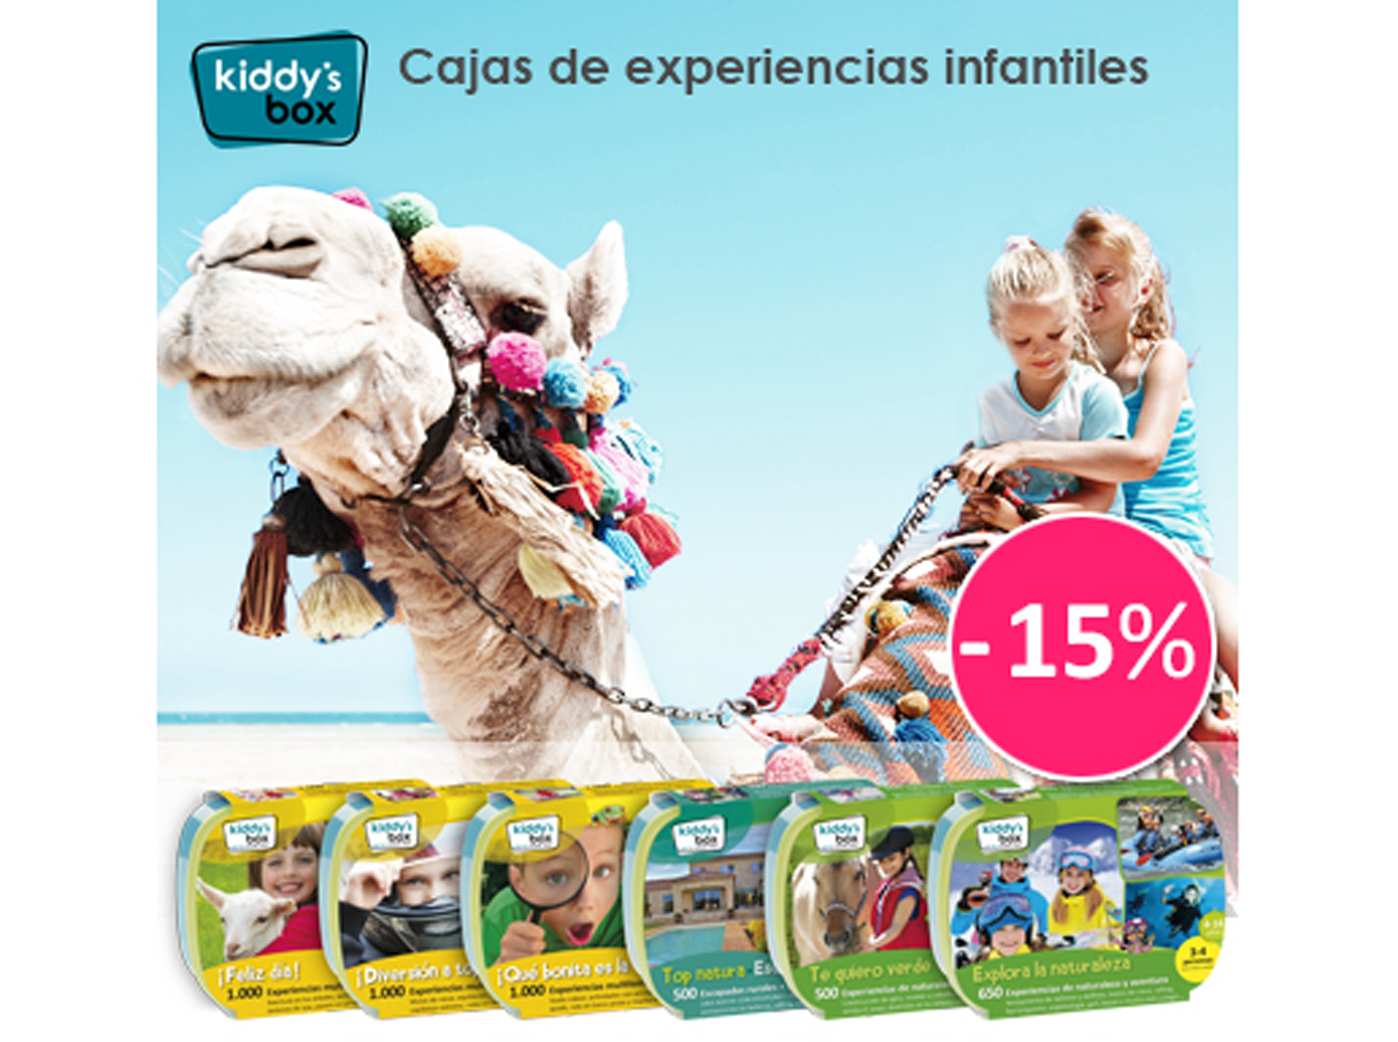 15% dto. en Kiddysbox.com